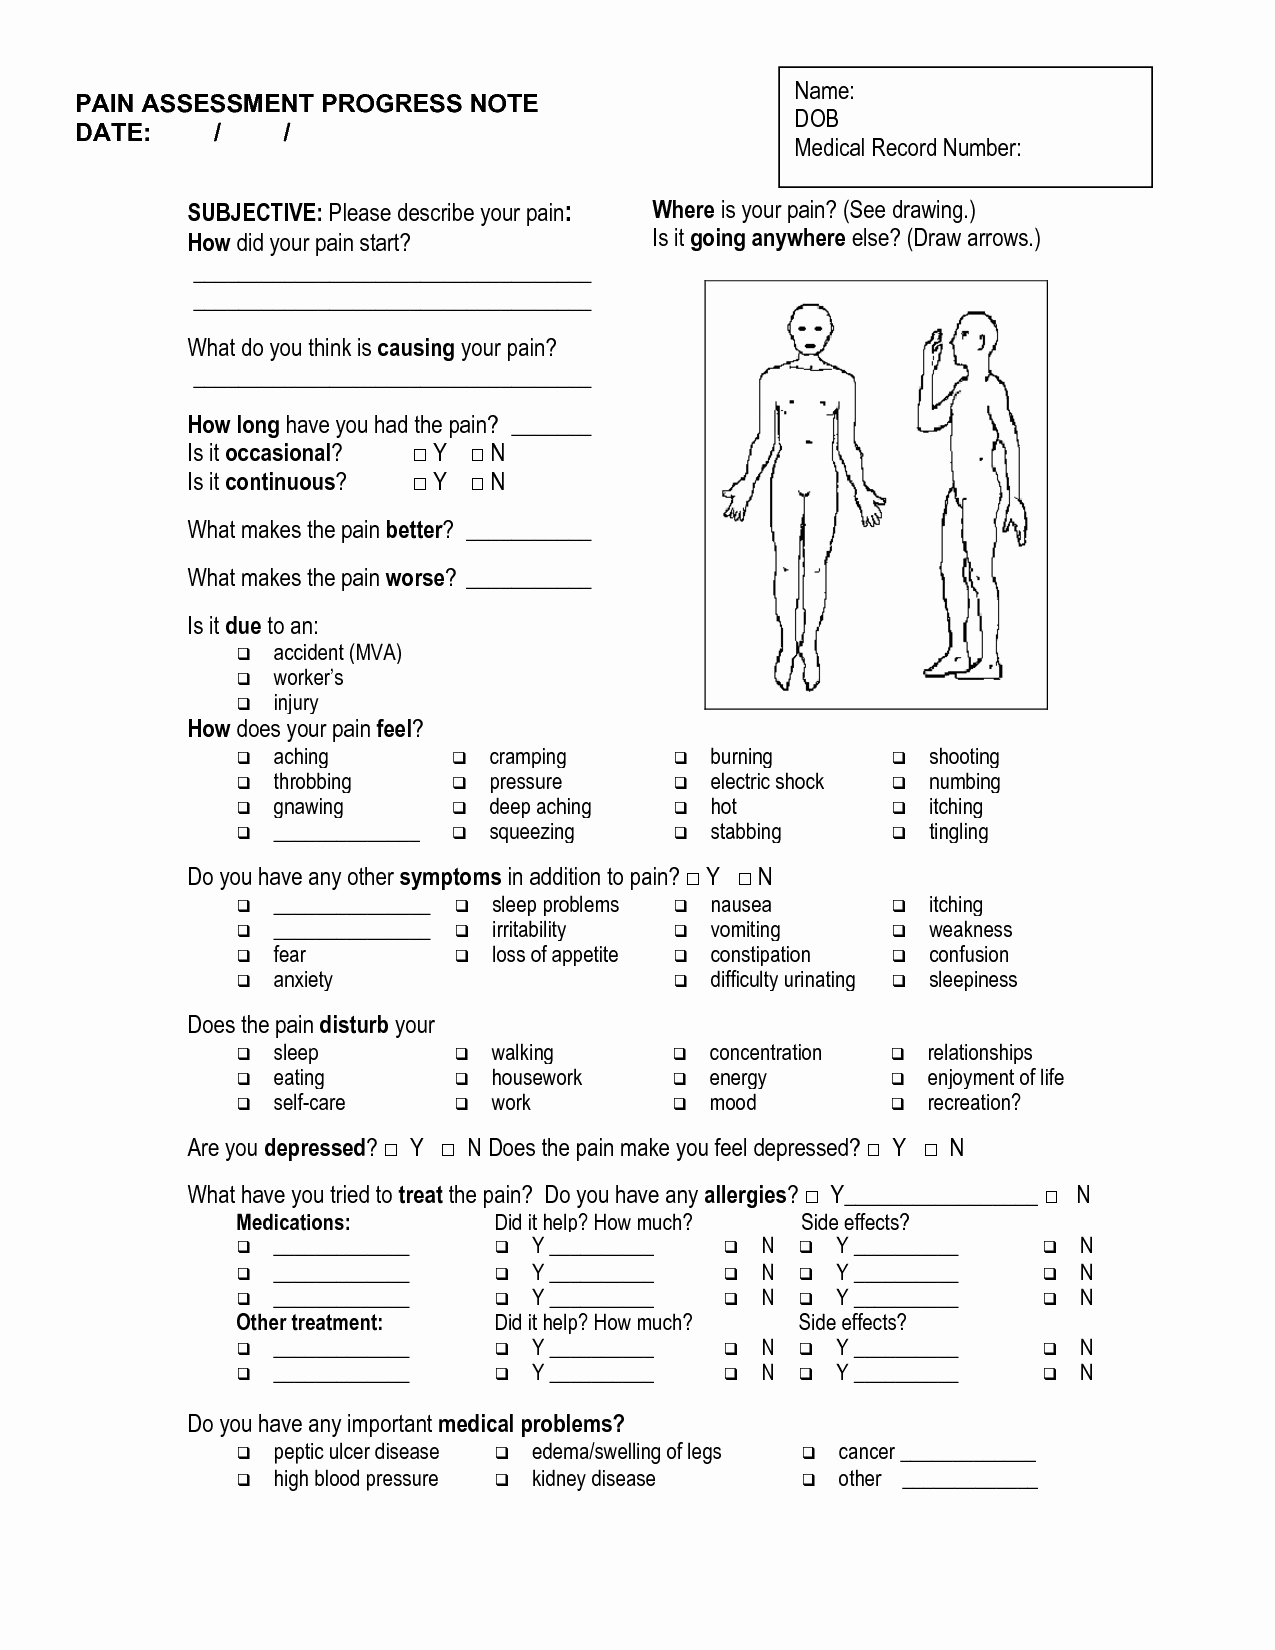 Chiropractic soap Note Example Fresh Massage soap Notes Template Massage